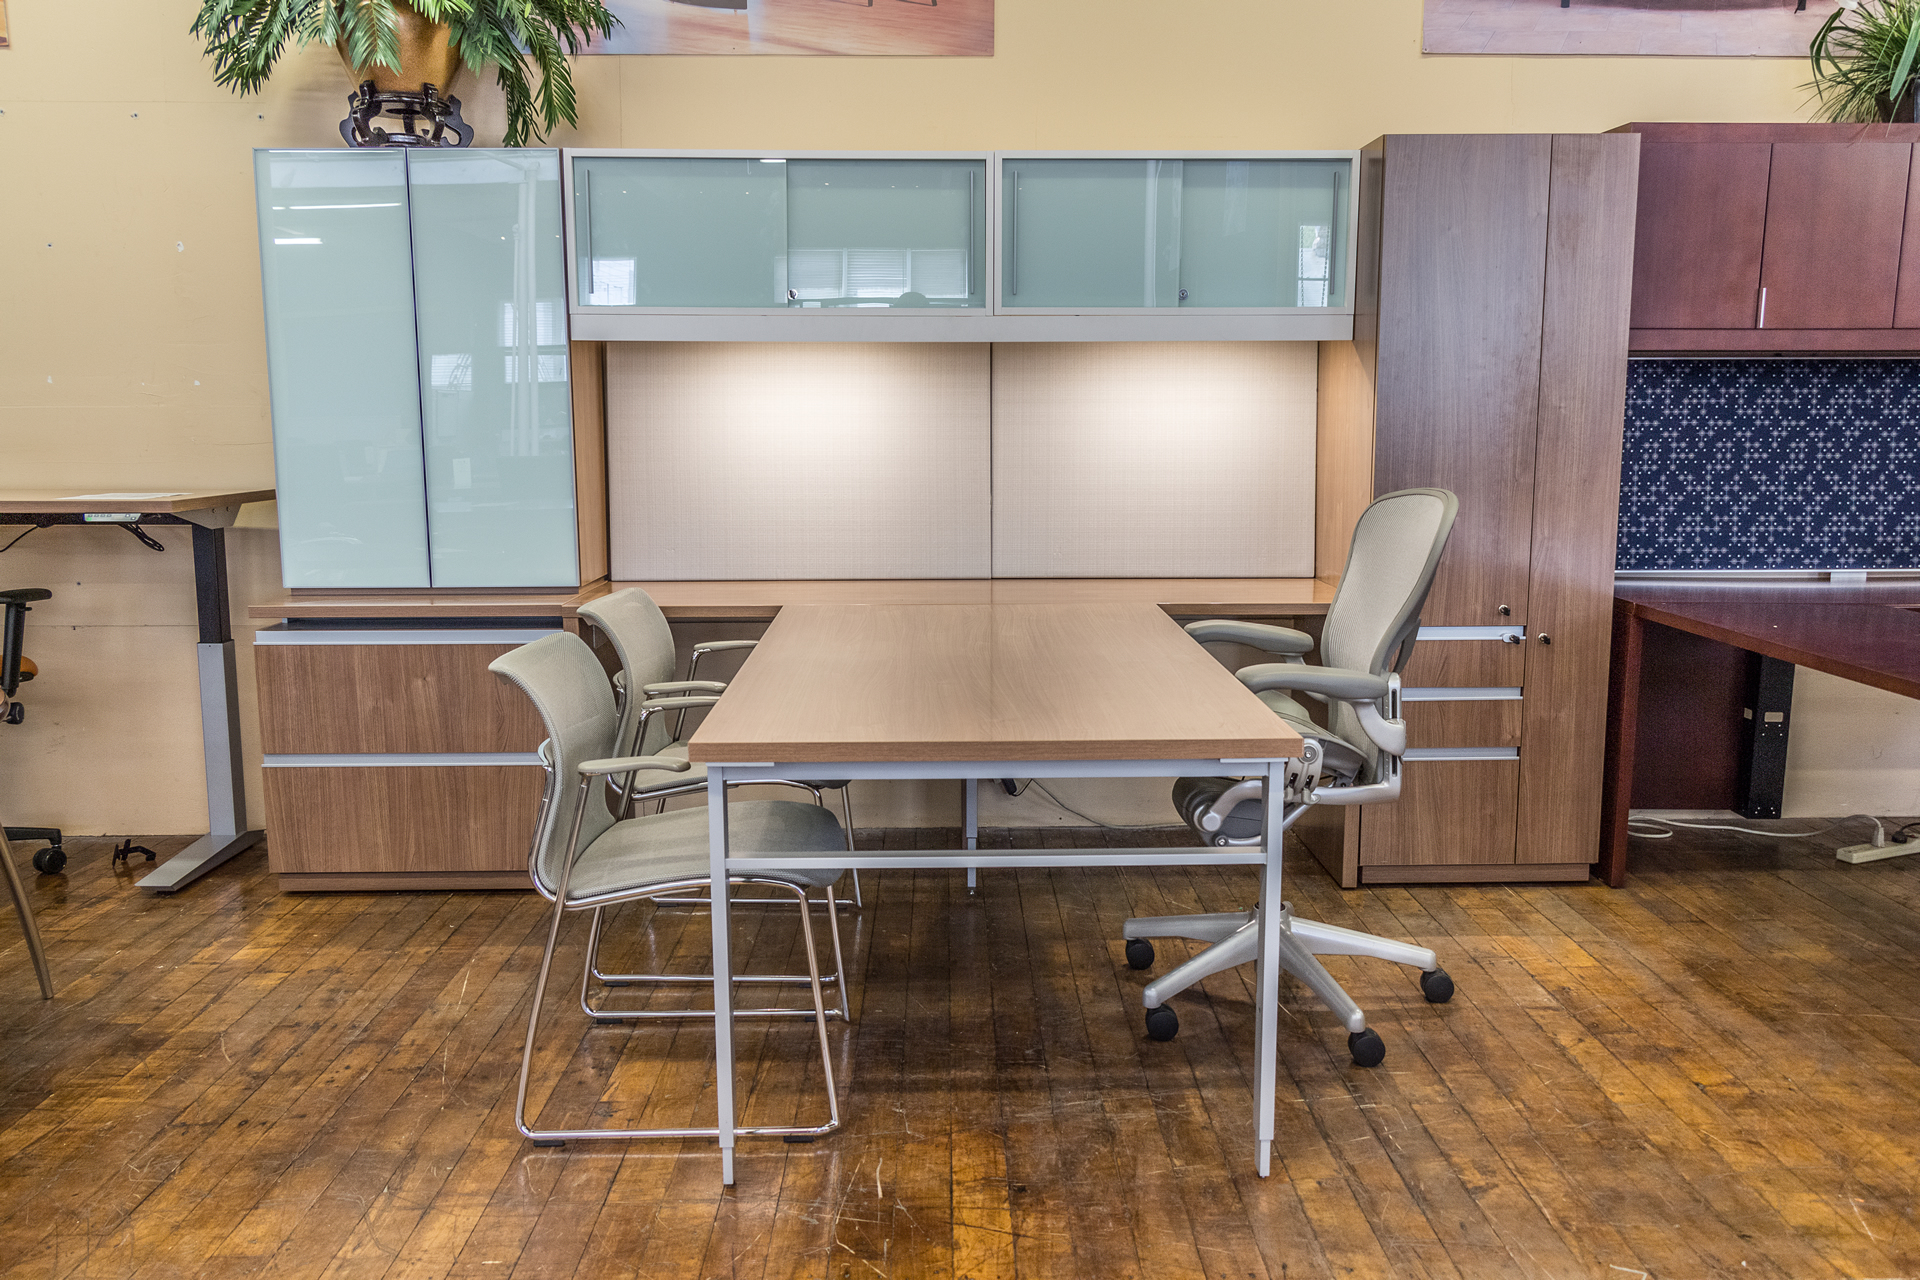 peartreeofficefurniture_peartreeofficefurniture_peartreeofficefurniture_img_9972_1.jpg